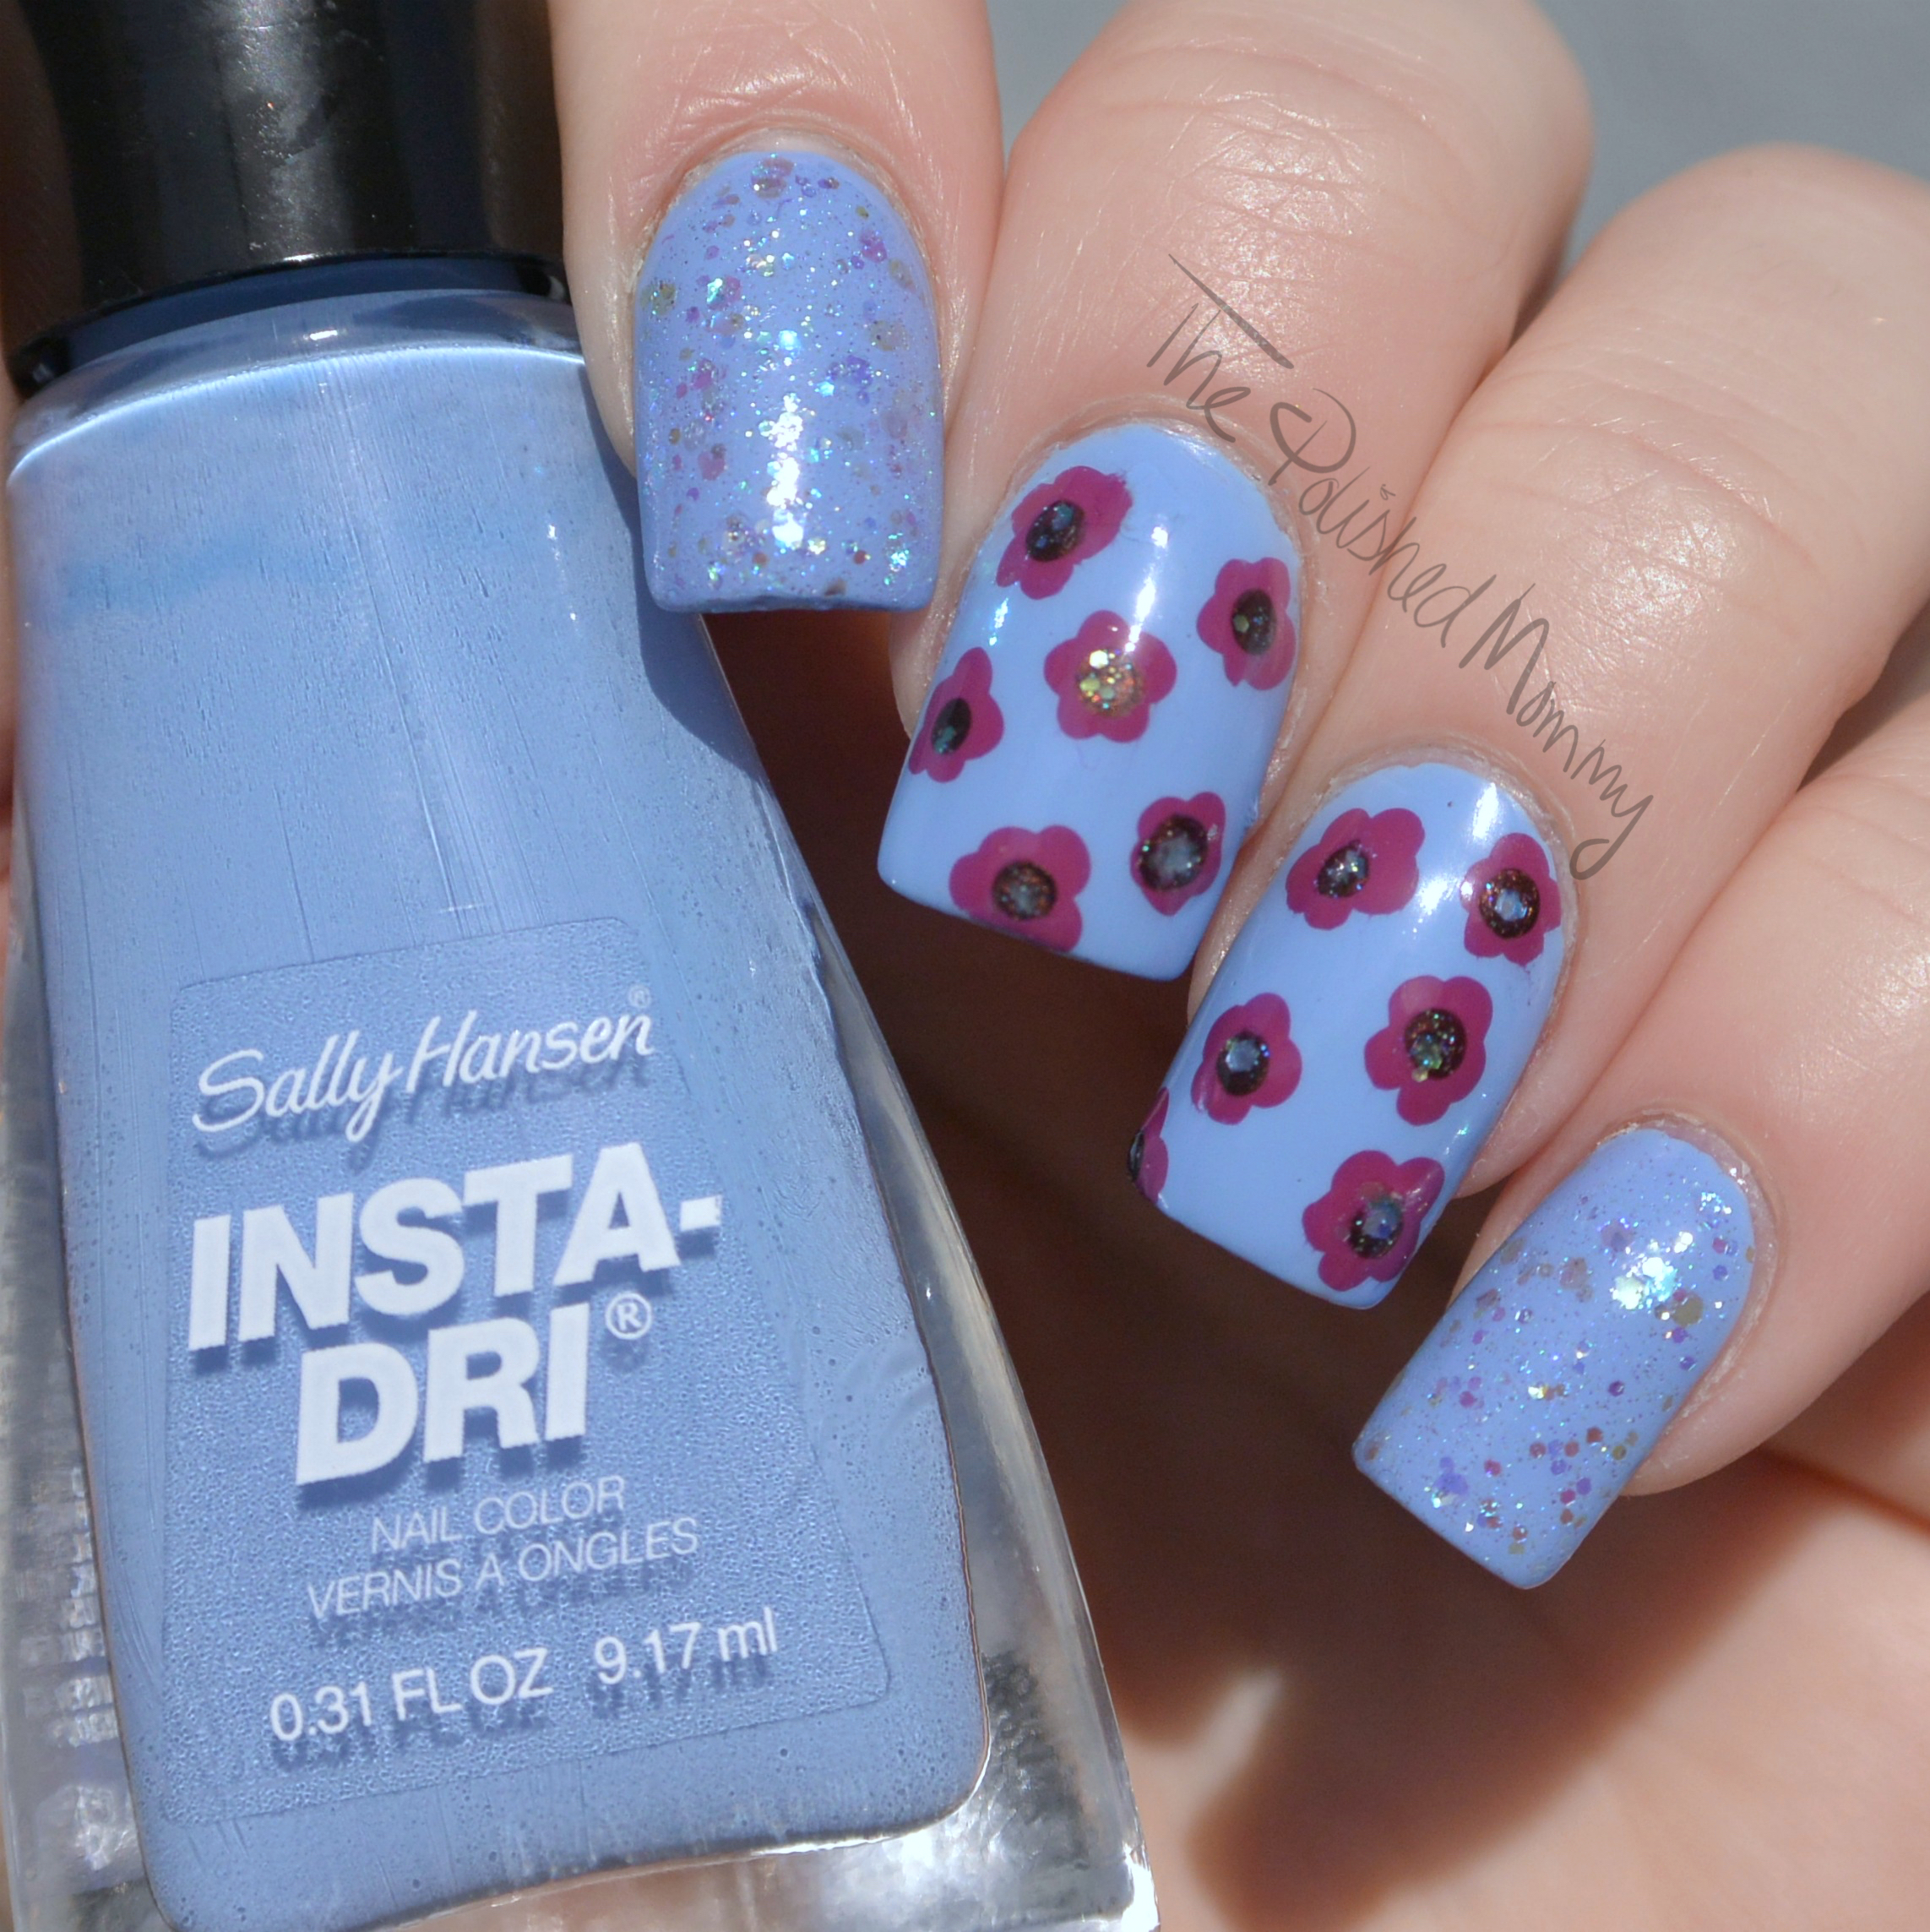 NEW Sally Hansen Insta Dri Colors - The Polished Mommy